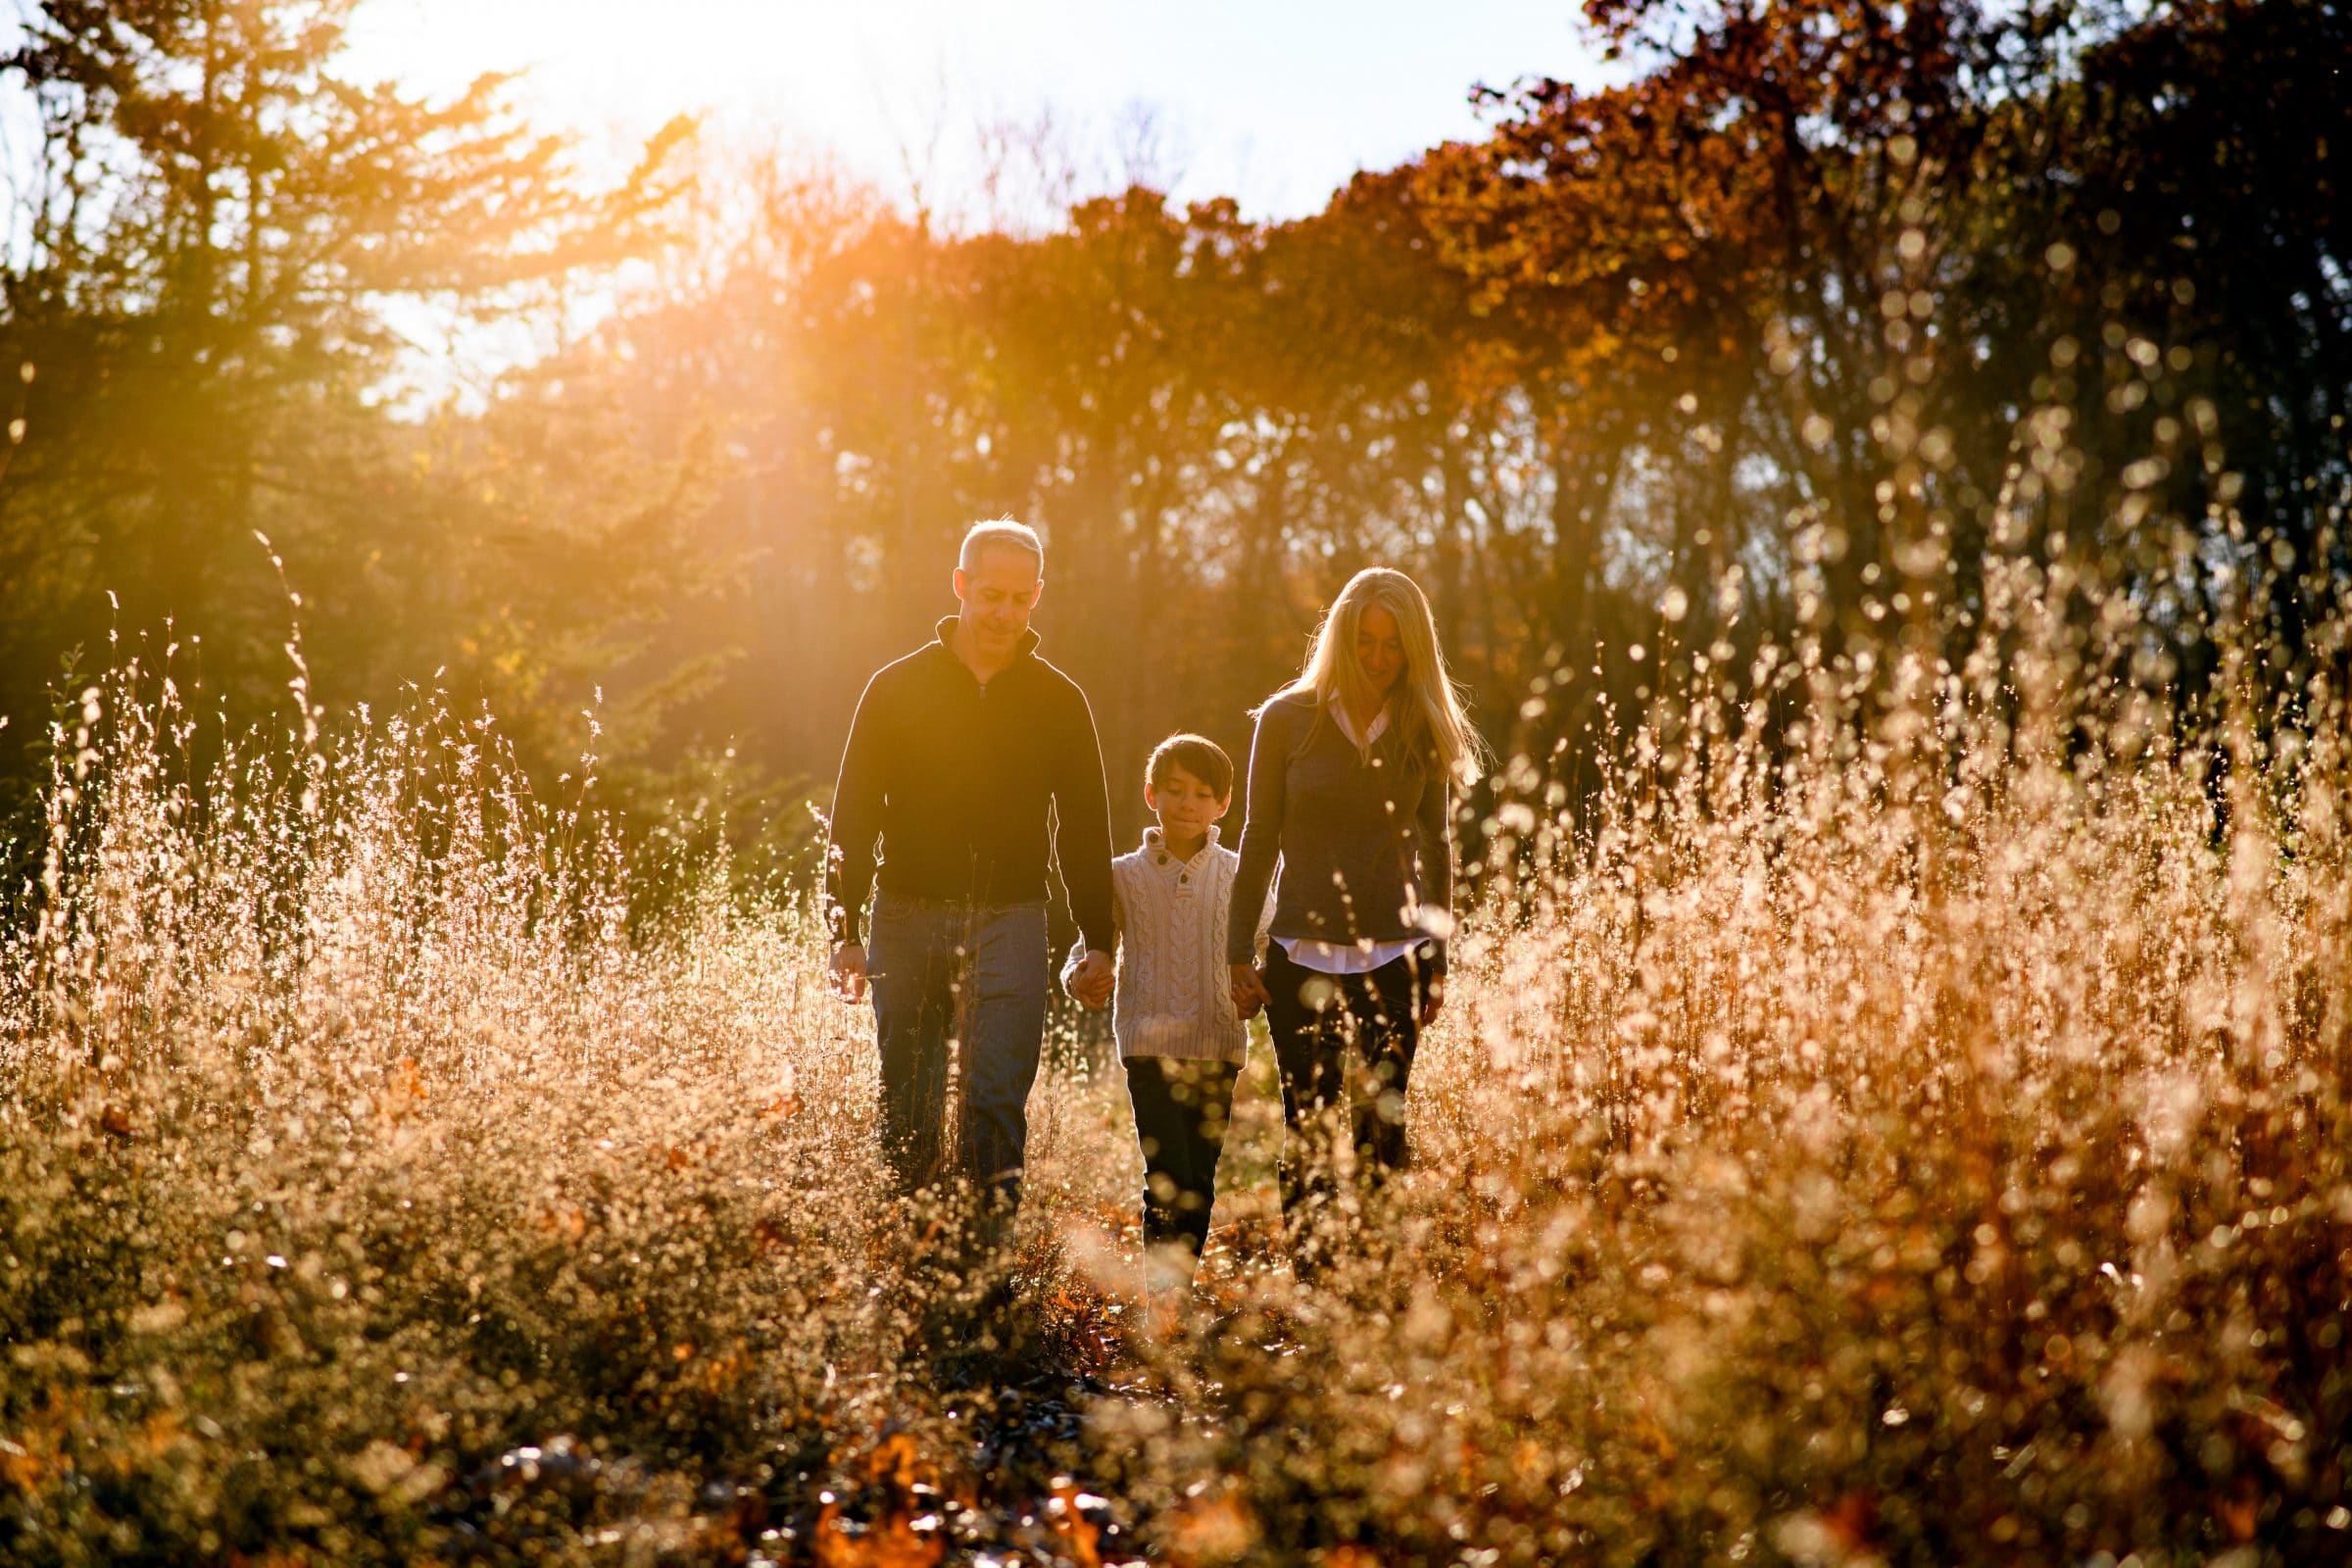 family of 3 walking through tall grasses during golden hour